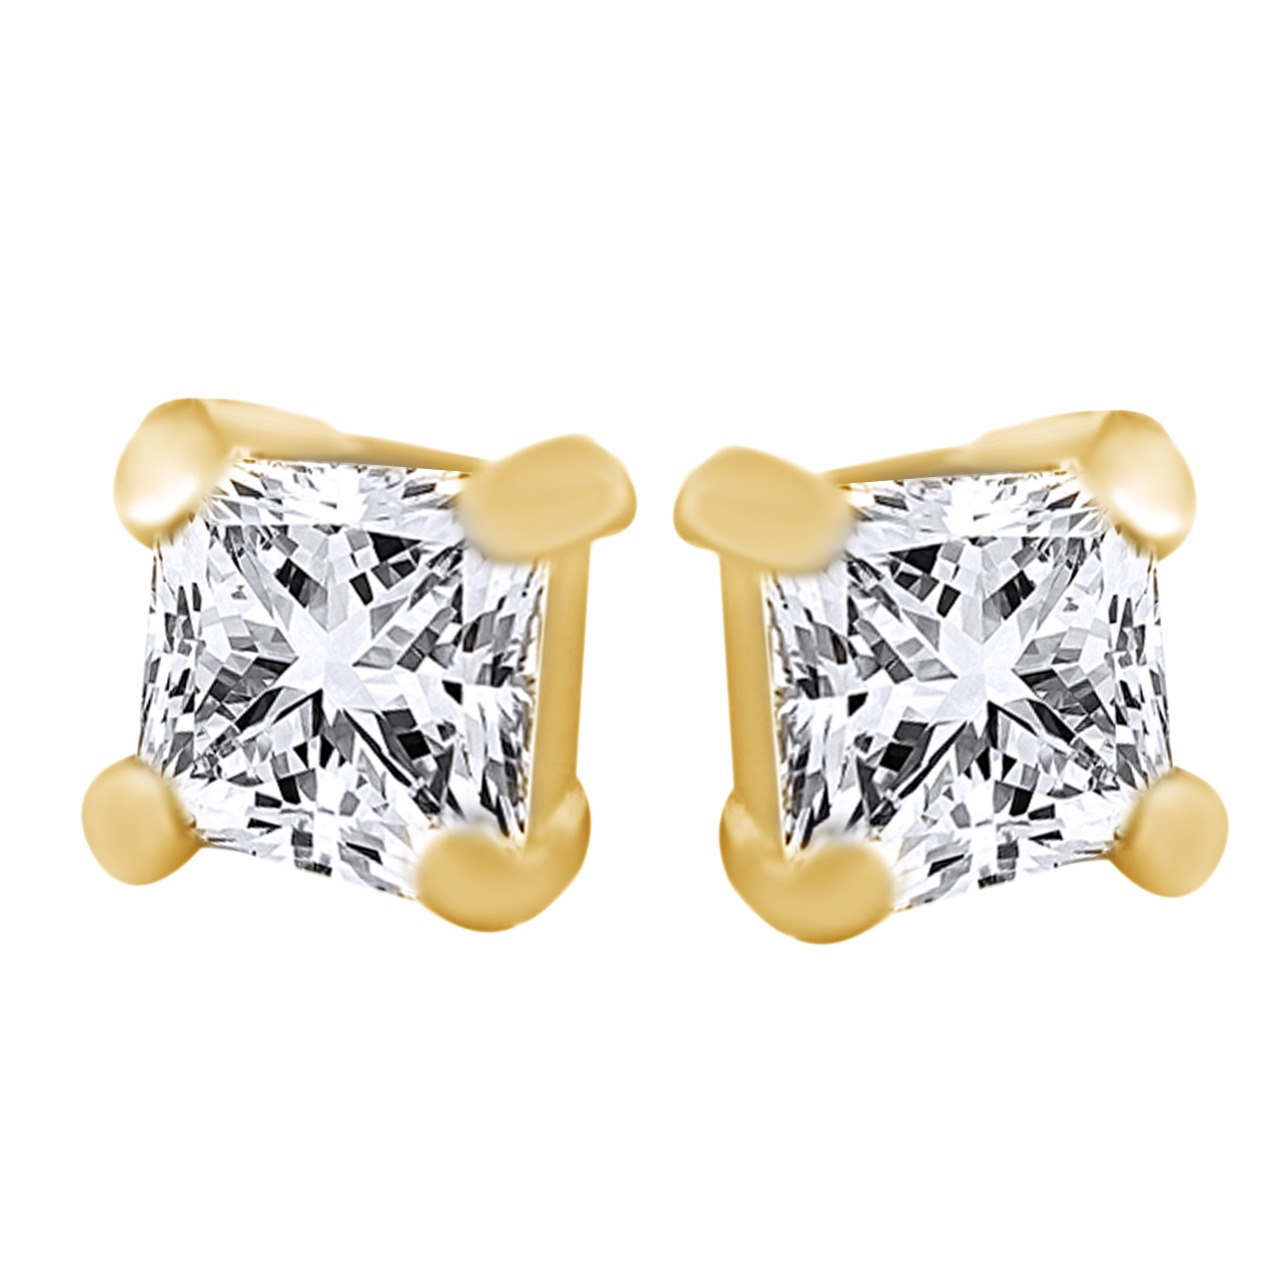 Square Princess cut 18k yellow gold Over crystal square stud earrings tiny yoursfs 18k white gold plated austria crystal soliraire anniverary rings with princess cut